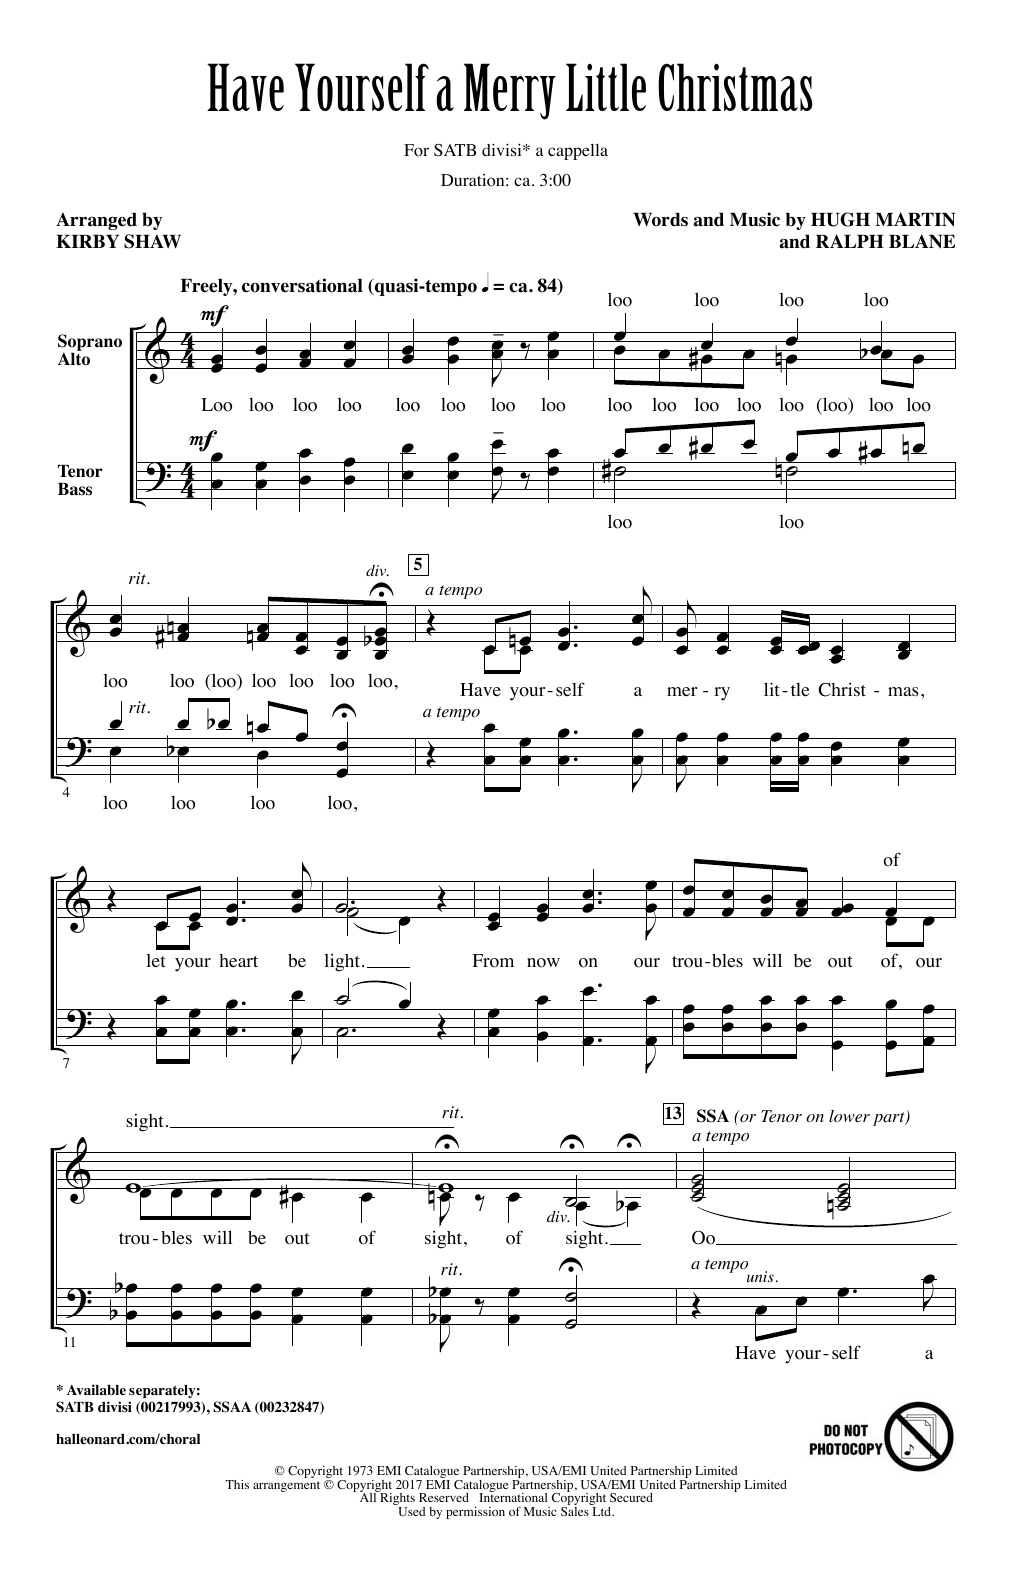 Have Yourself A Merry Little Christmas (SATB Choir)